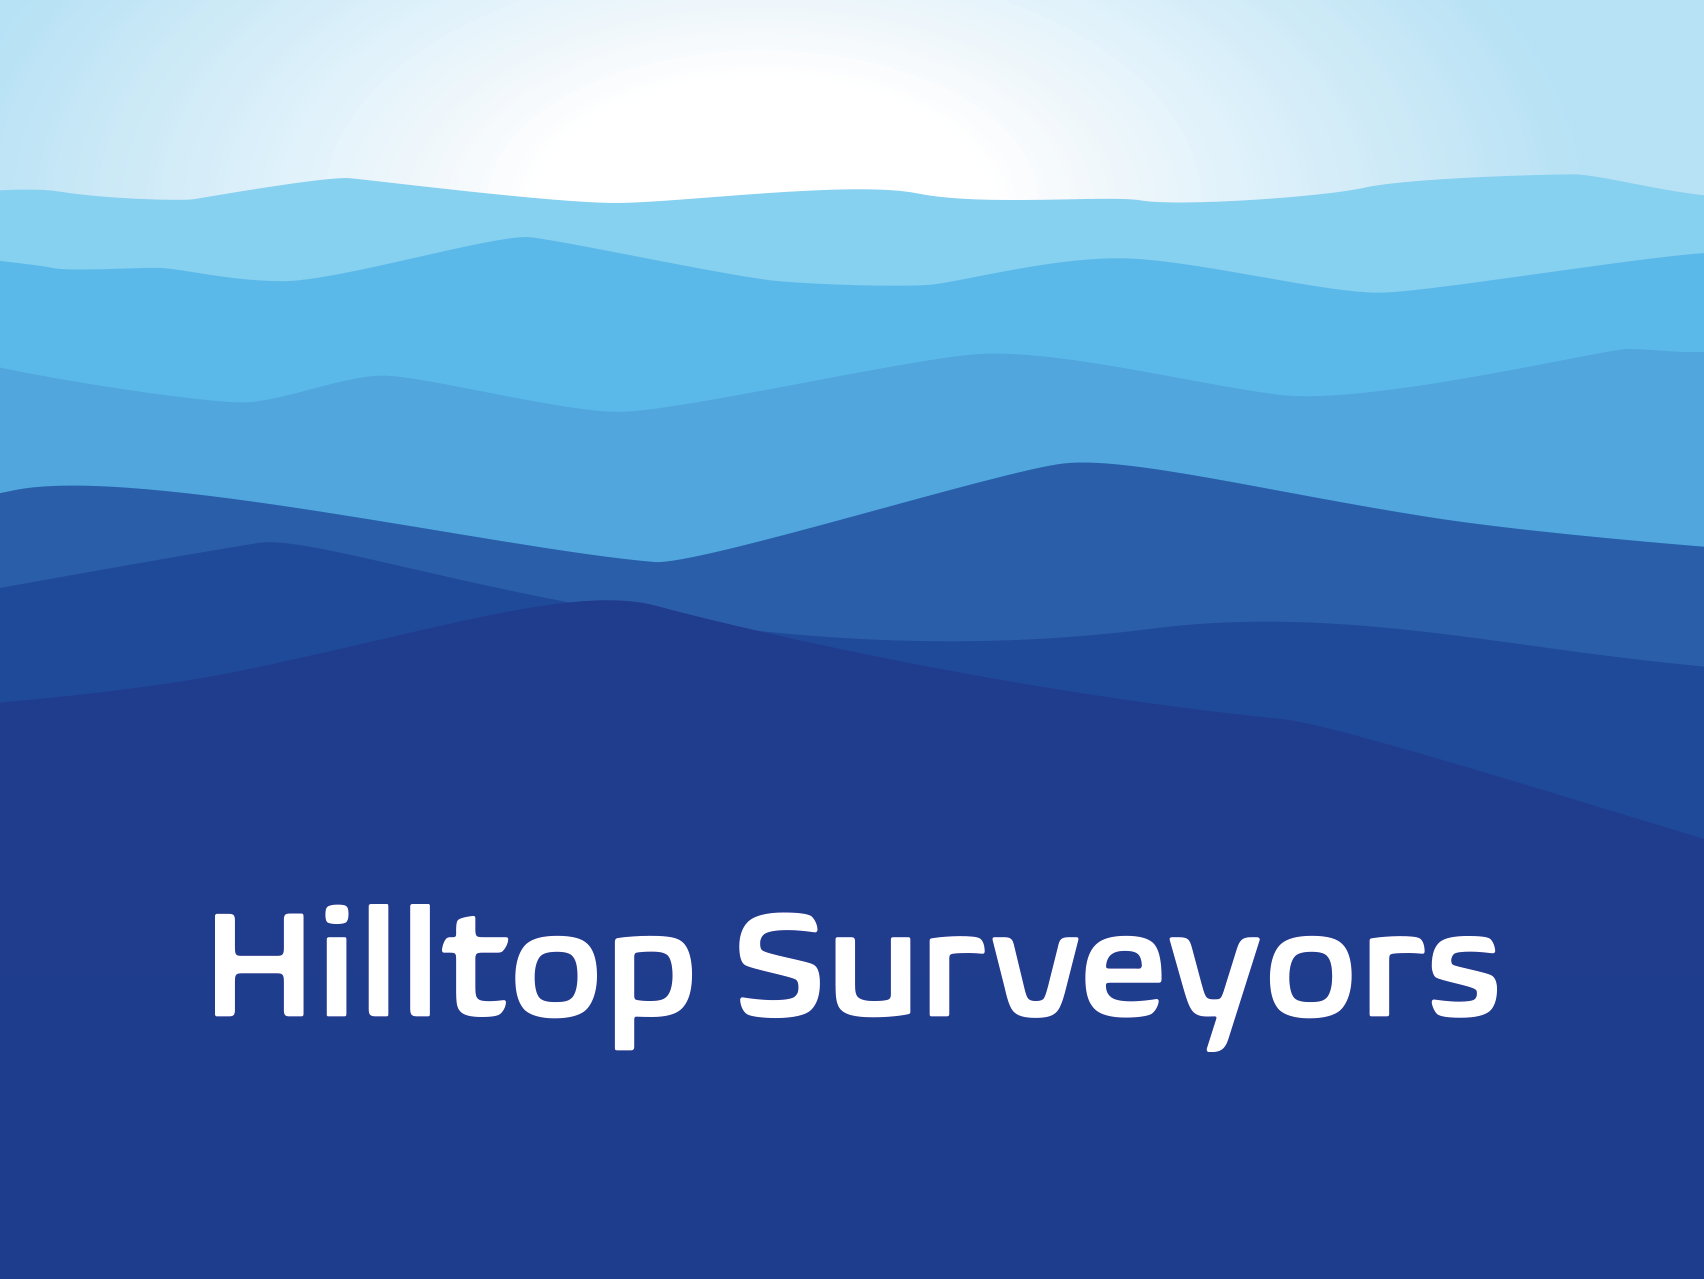 Hilltop Surveyors Logo design by Collective.Digital